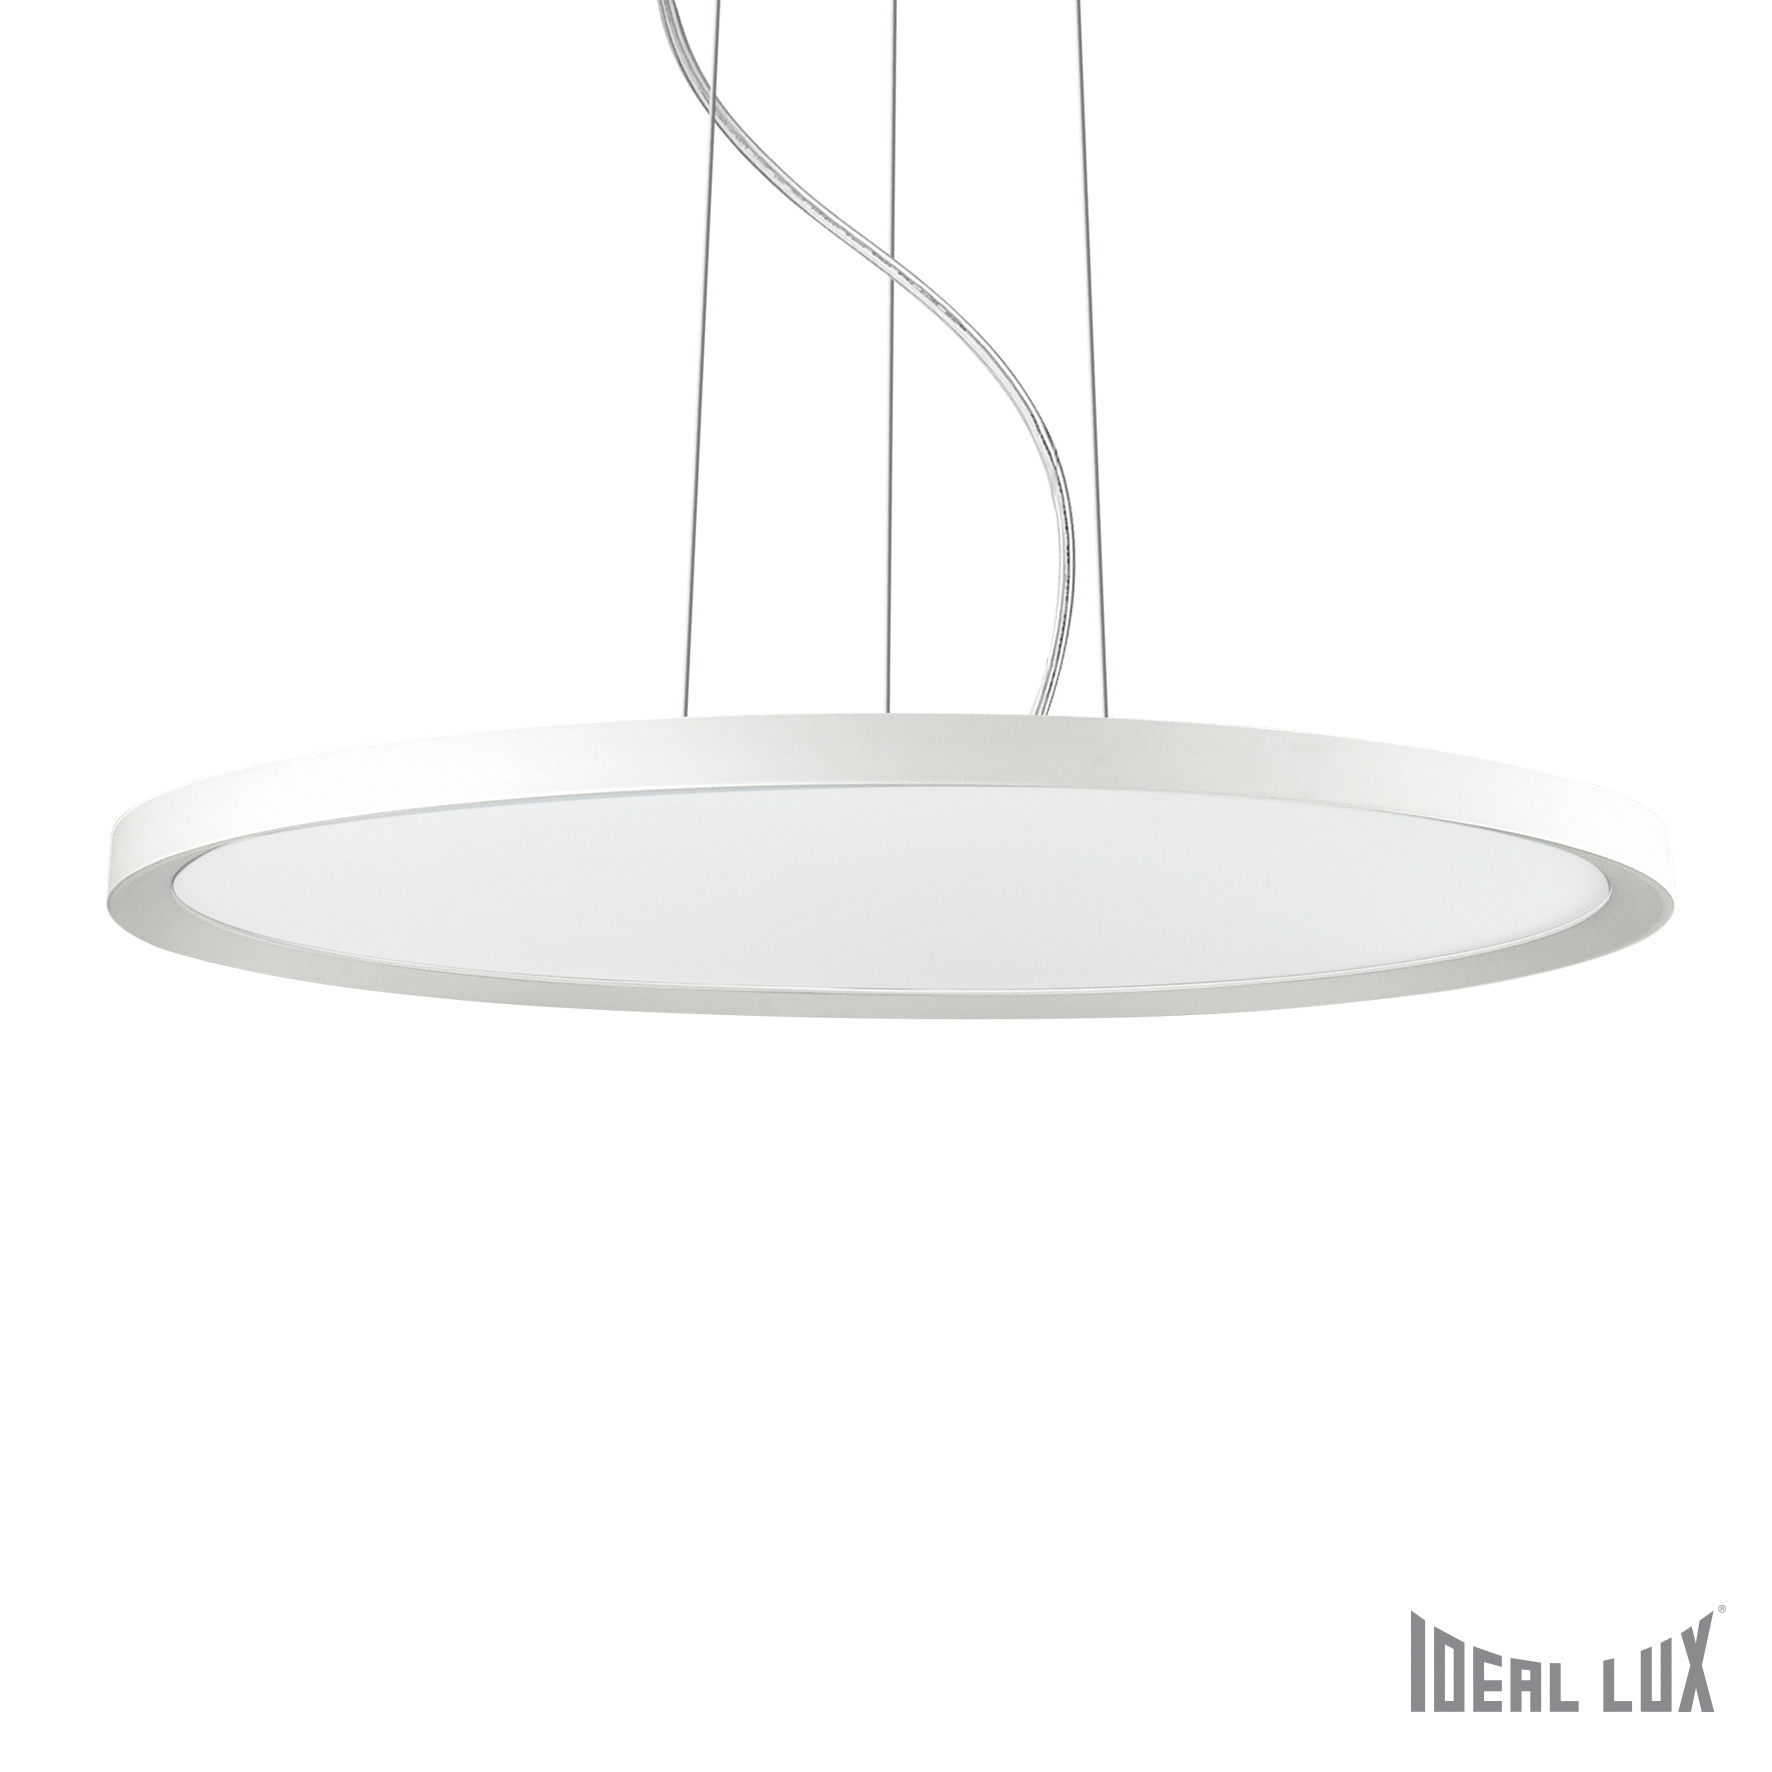 Luster Ideal Lux UFO medium Ø 550 50W LED